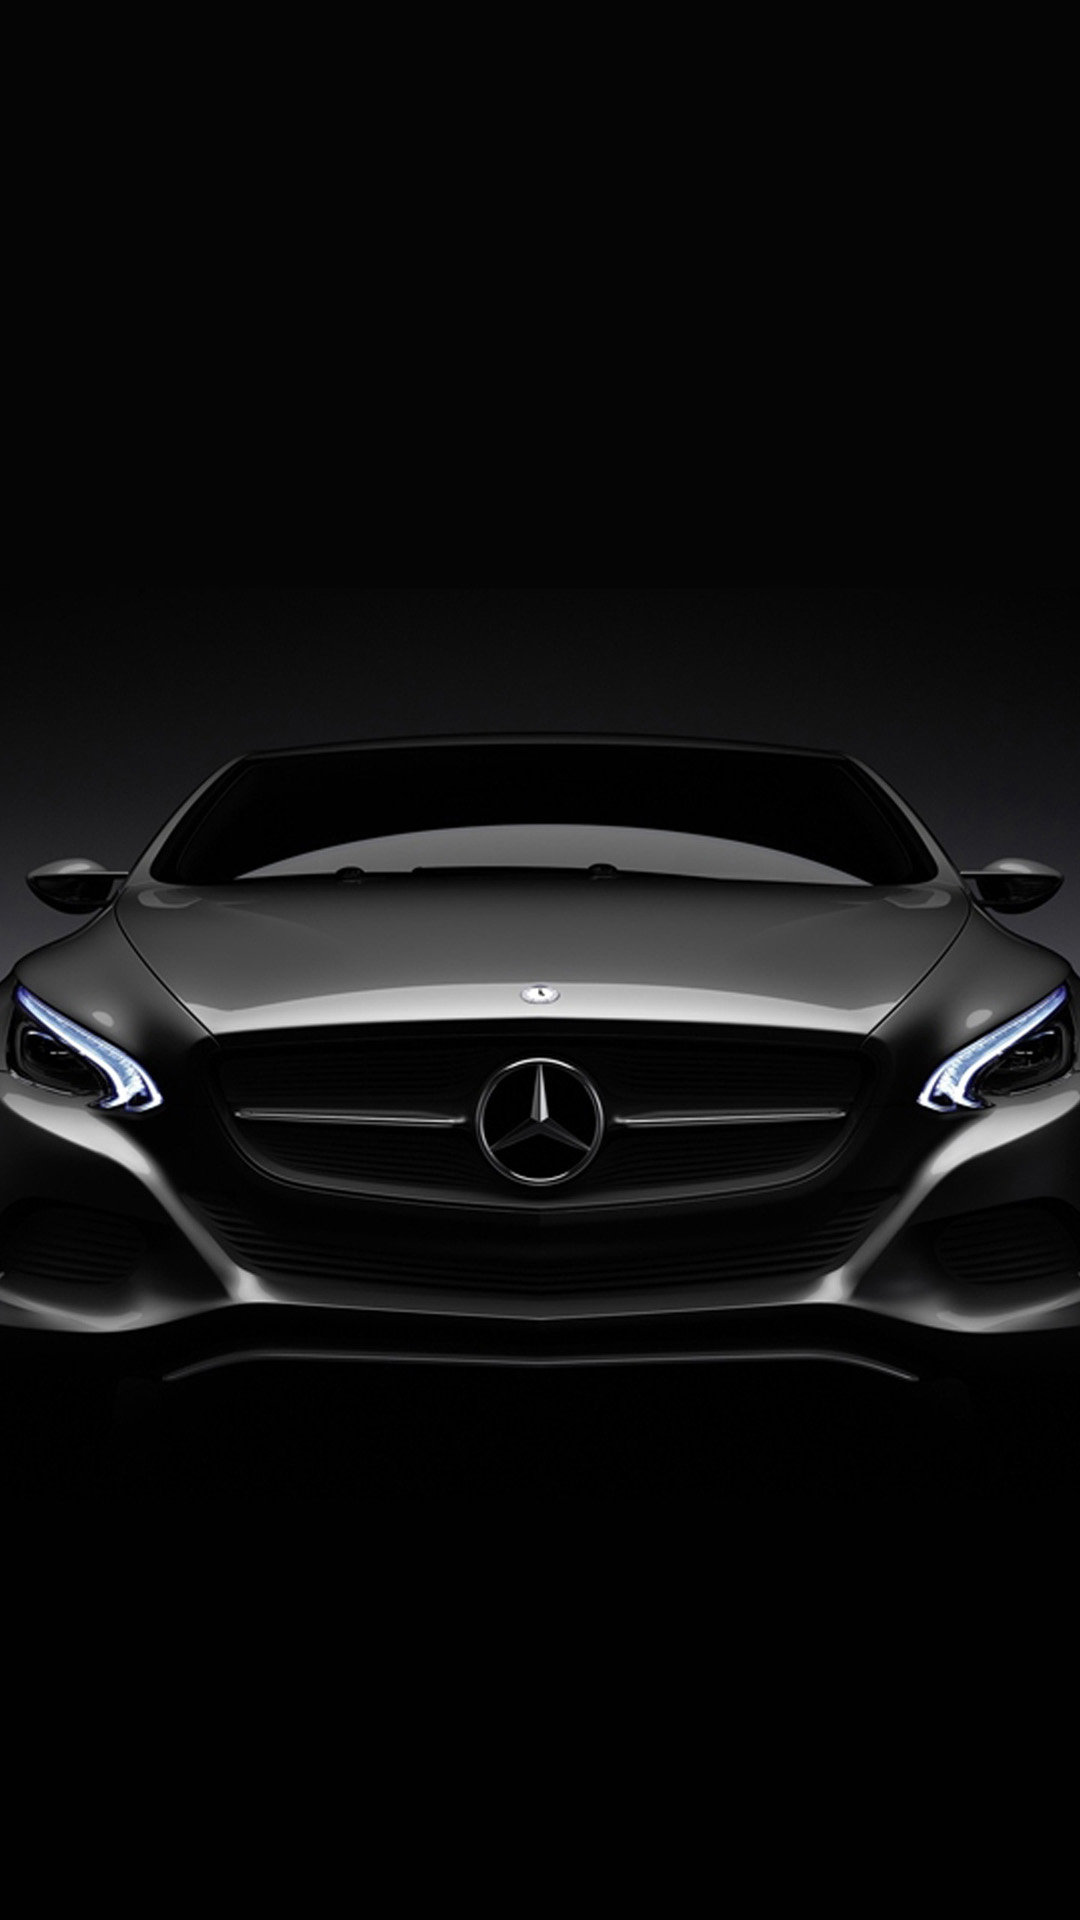 mercedes benz logo iphone 5 wallpaper wallpaper sportstle